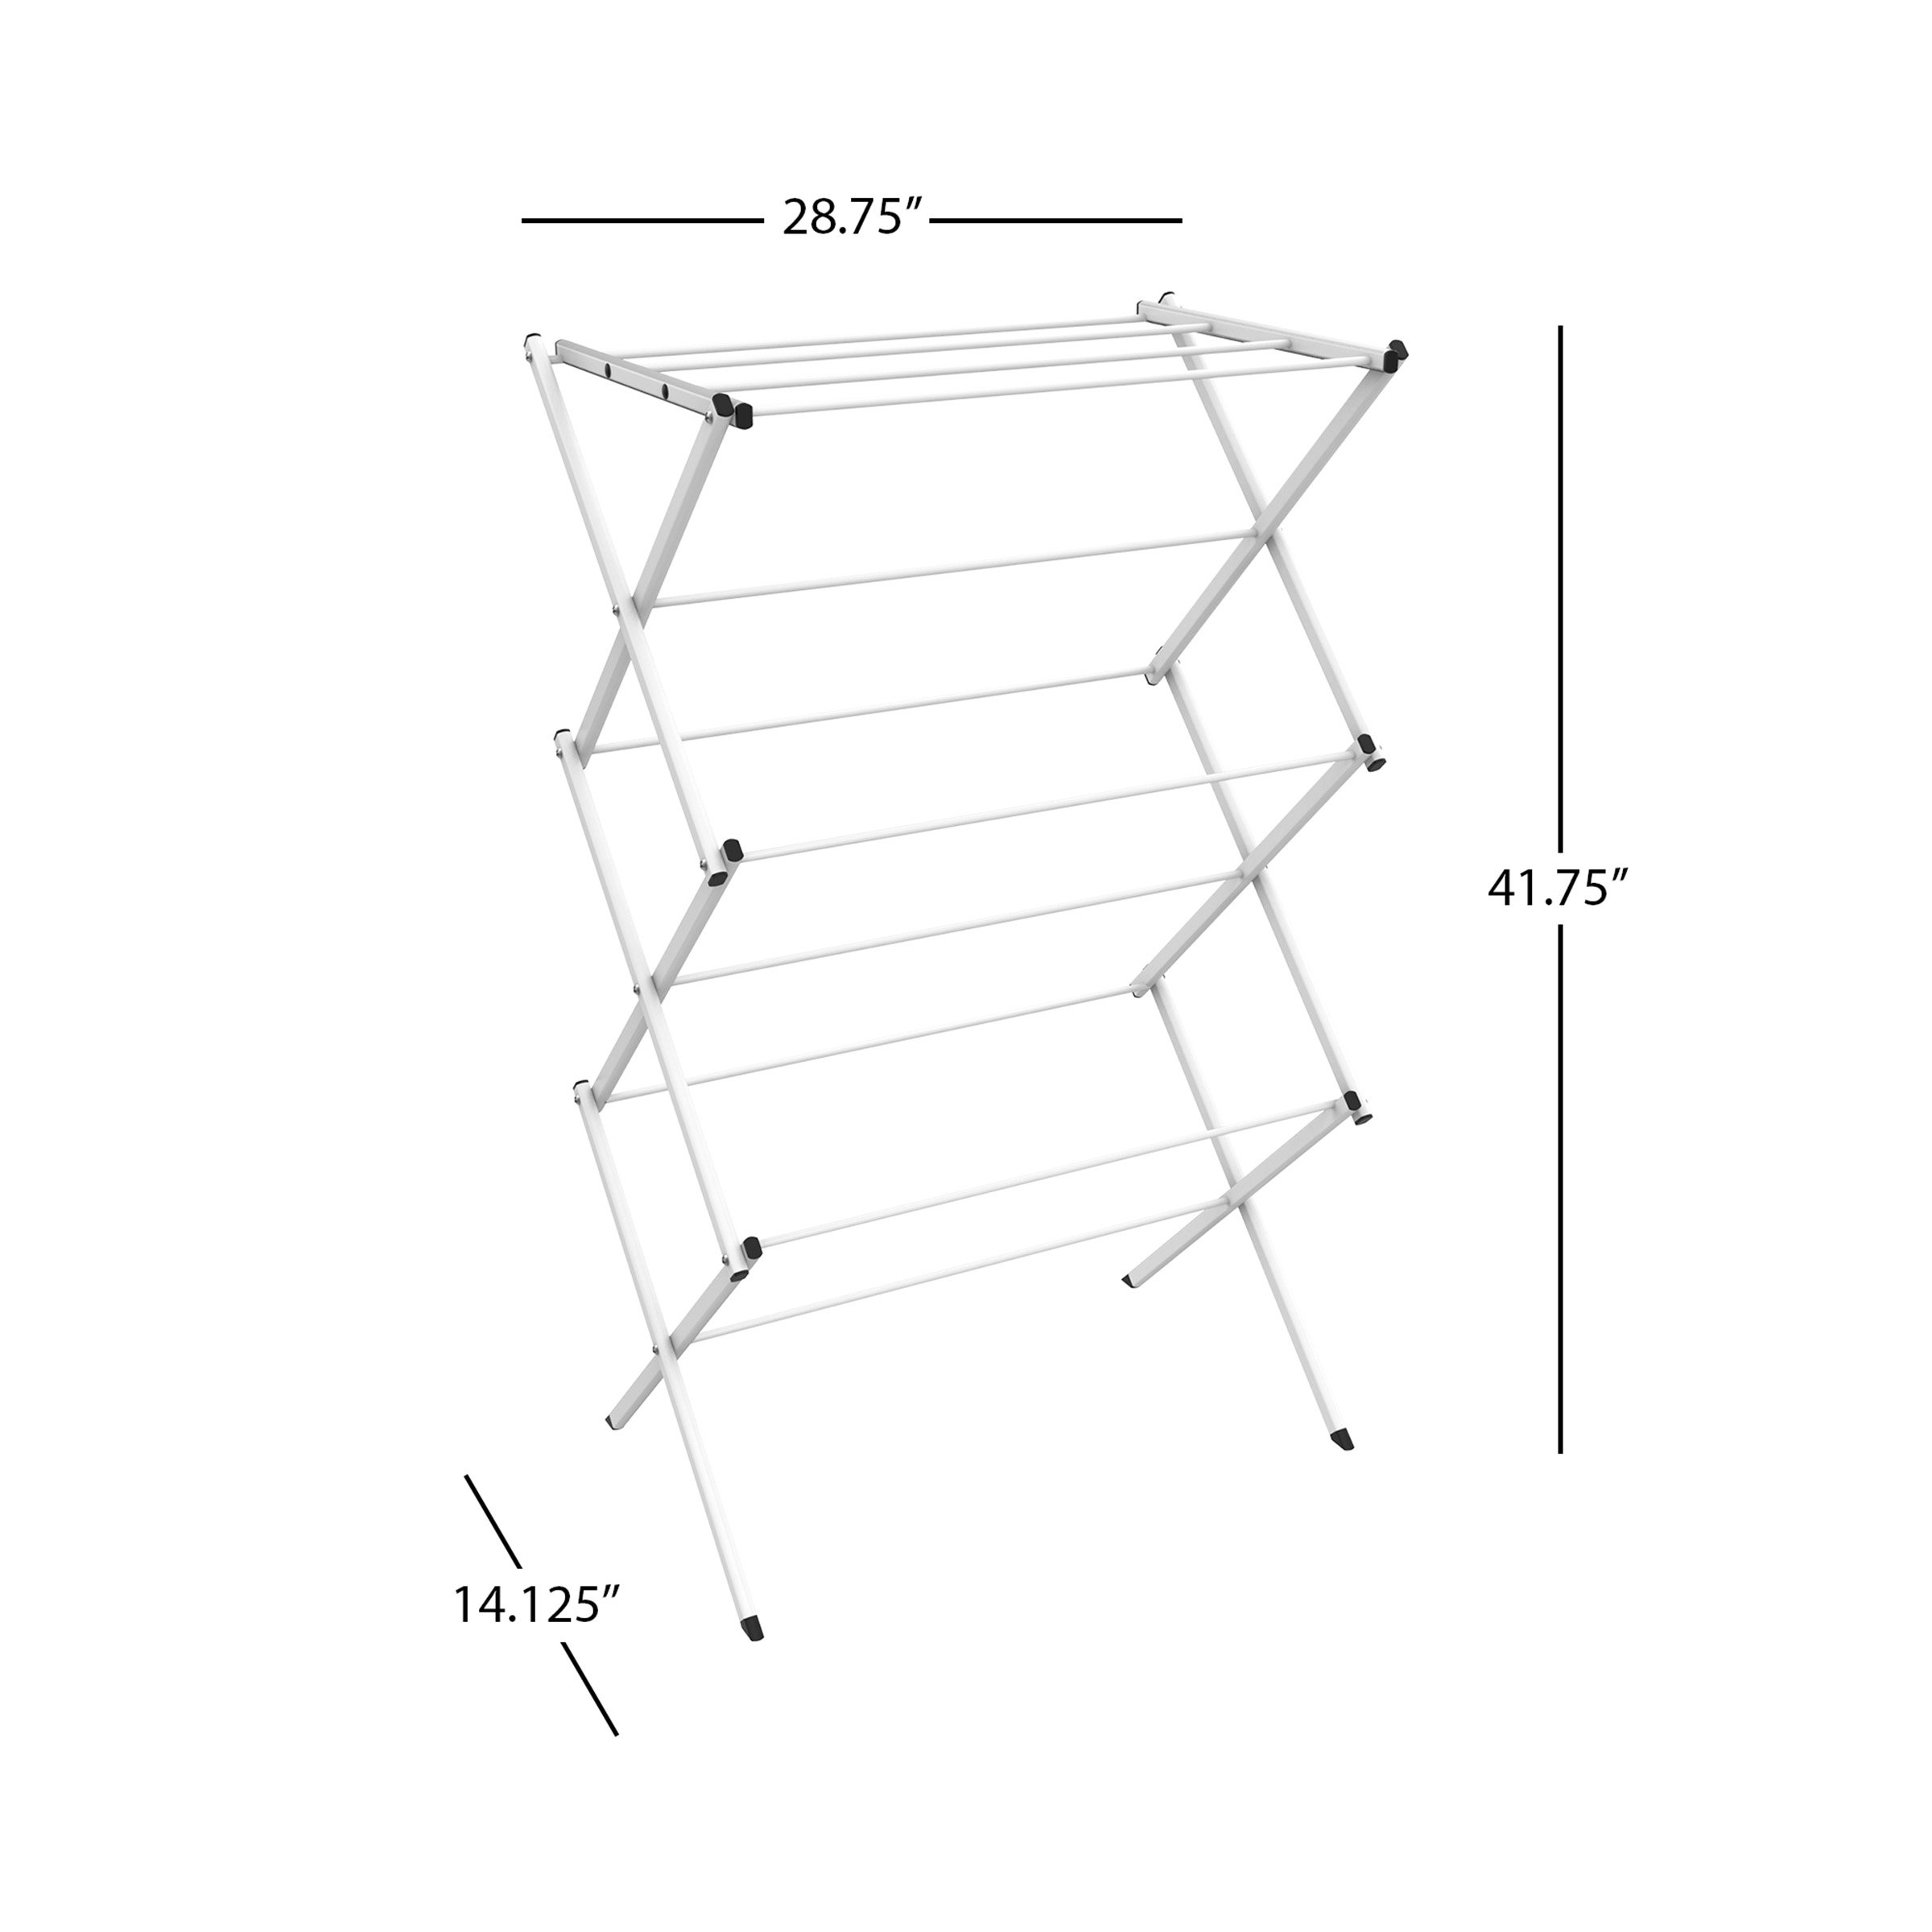 Lavish Home Clothes Drying Rack-24ft. of Drying Space-Collapsible and Compact for Indoor/Outdoor Use-Portable Stand for Hanging, Air-Drying Laundry by Lavish Home (Image #2)